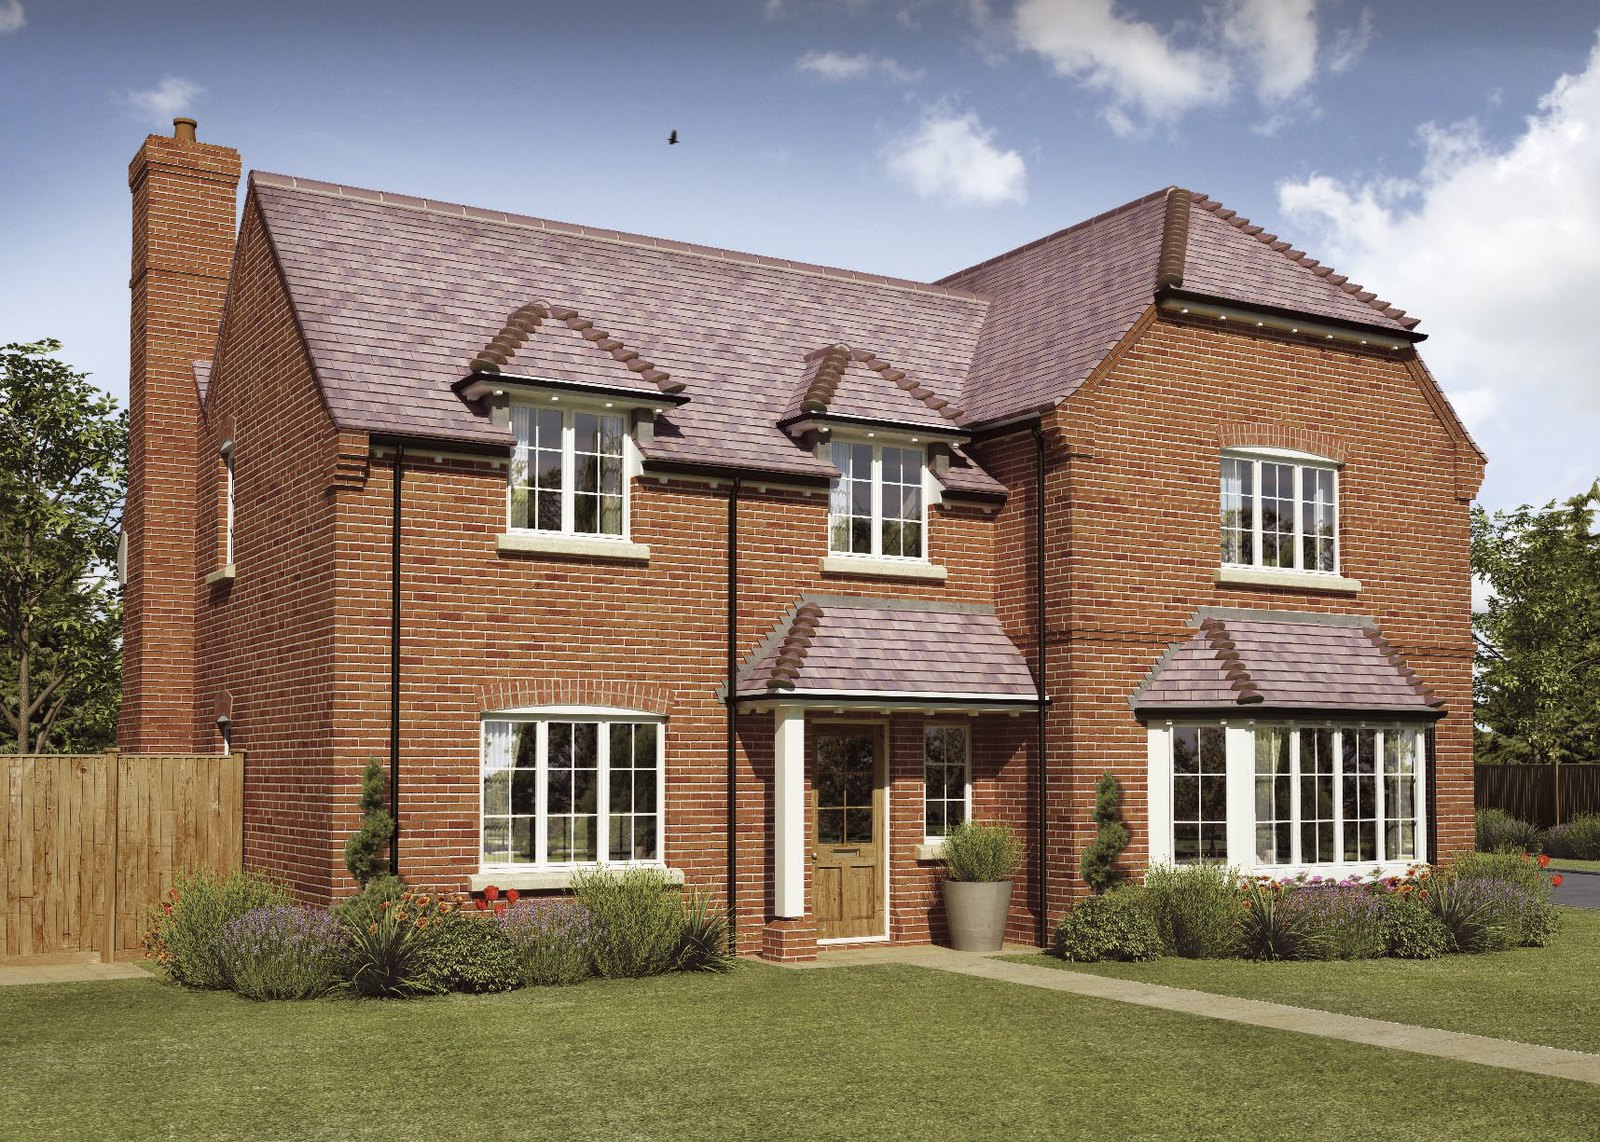 bewley-homes-basingstoke-our-work-developers-ascot-design-view1.jpg